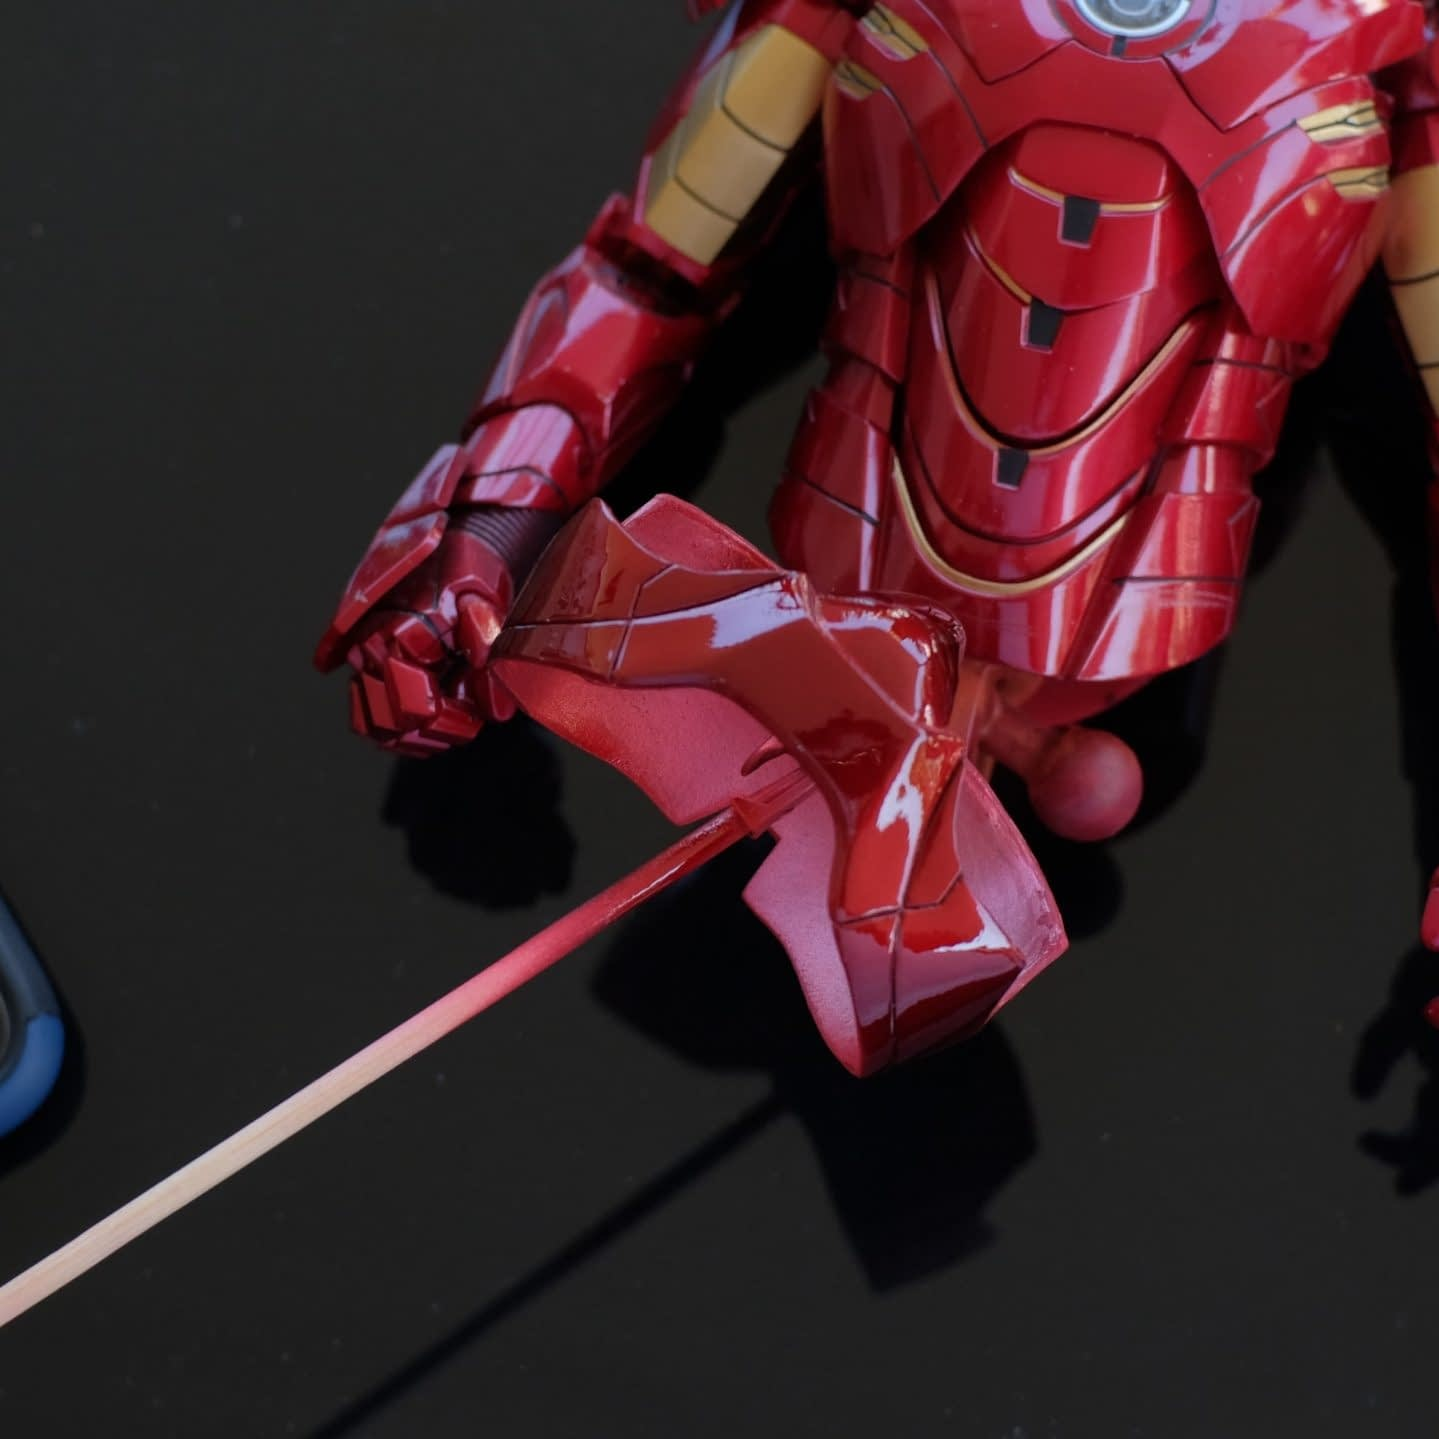 How to fix HT's Iron Man pink panty issue 2